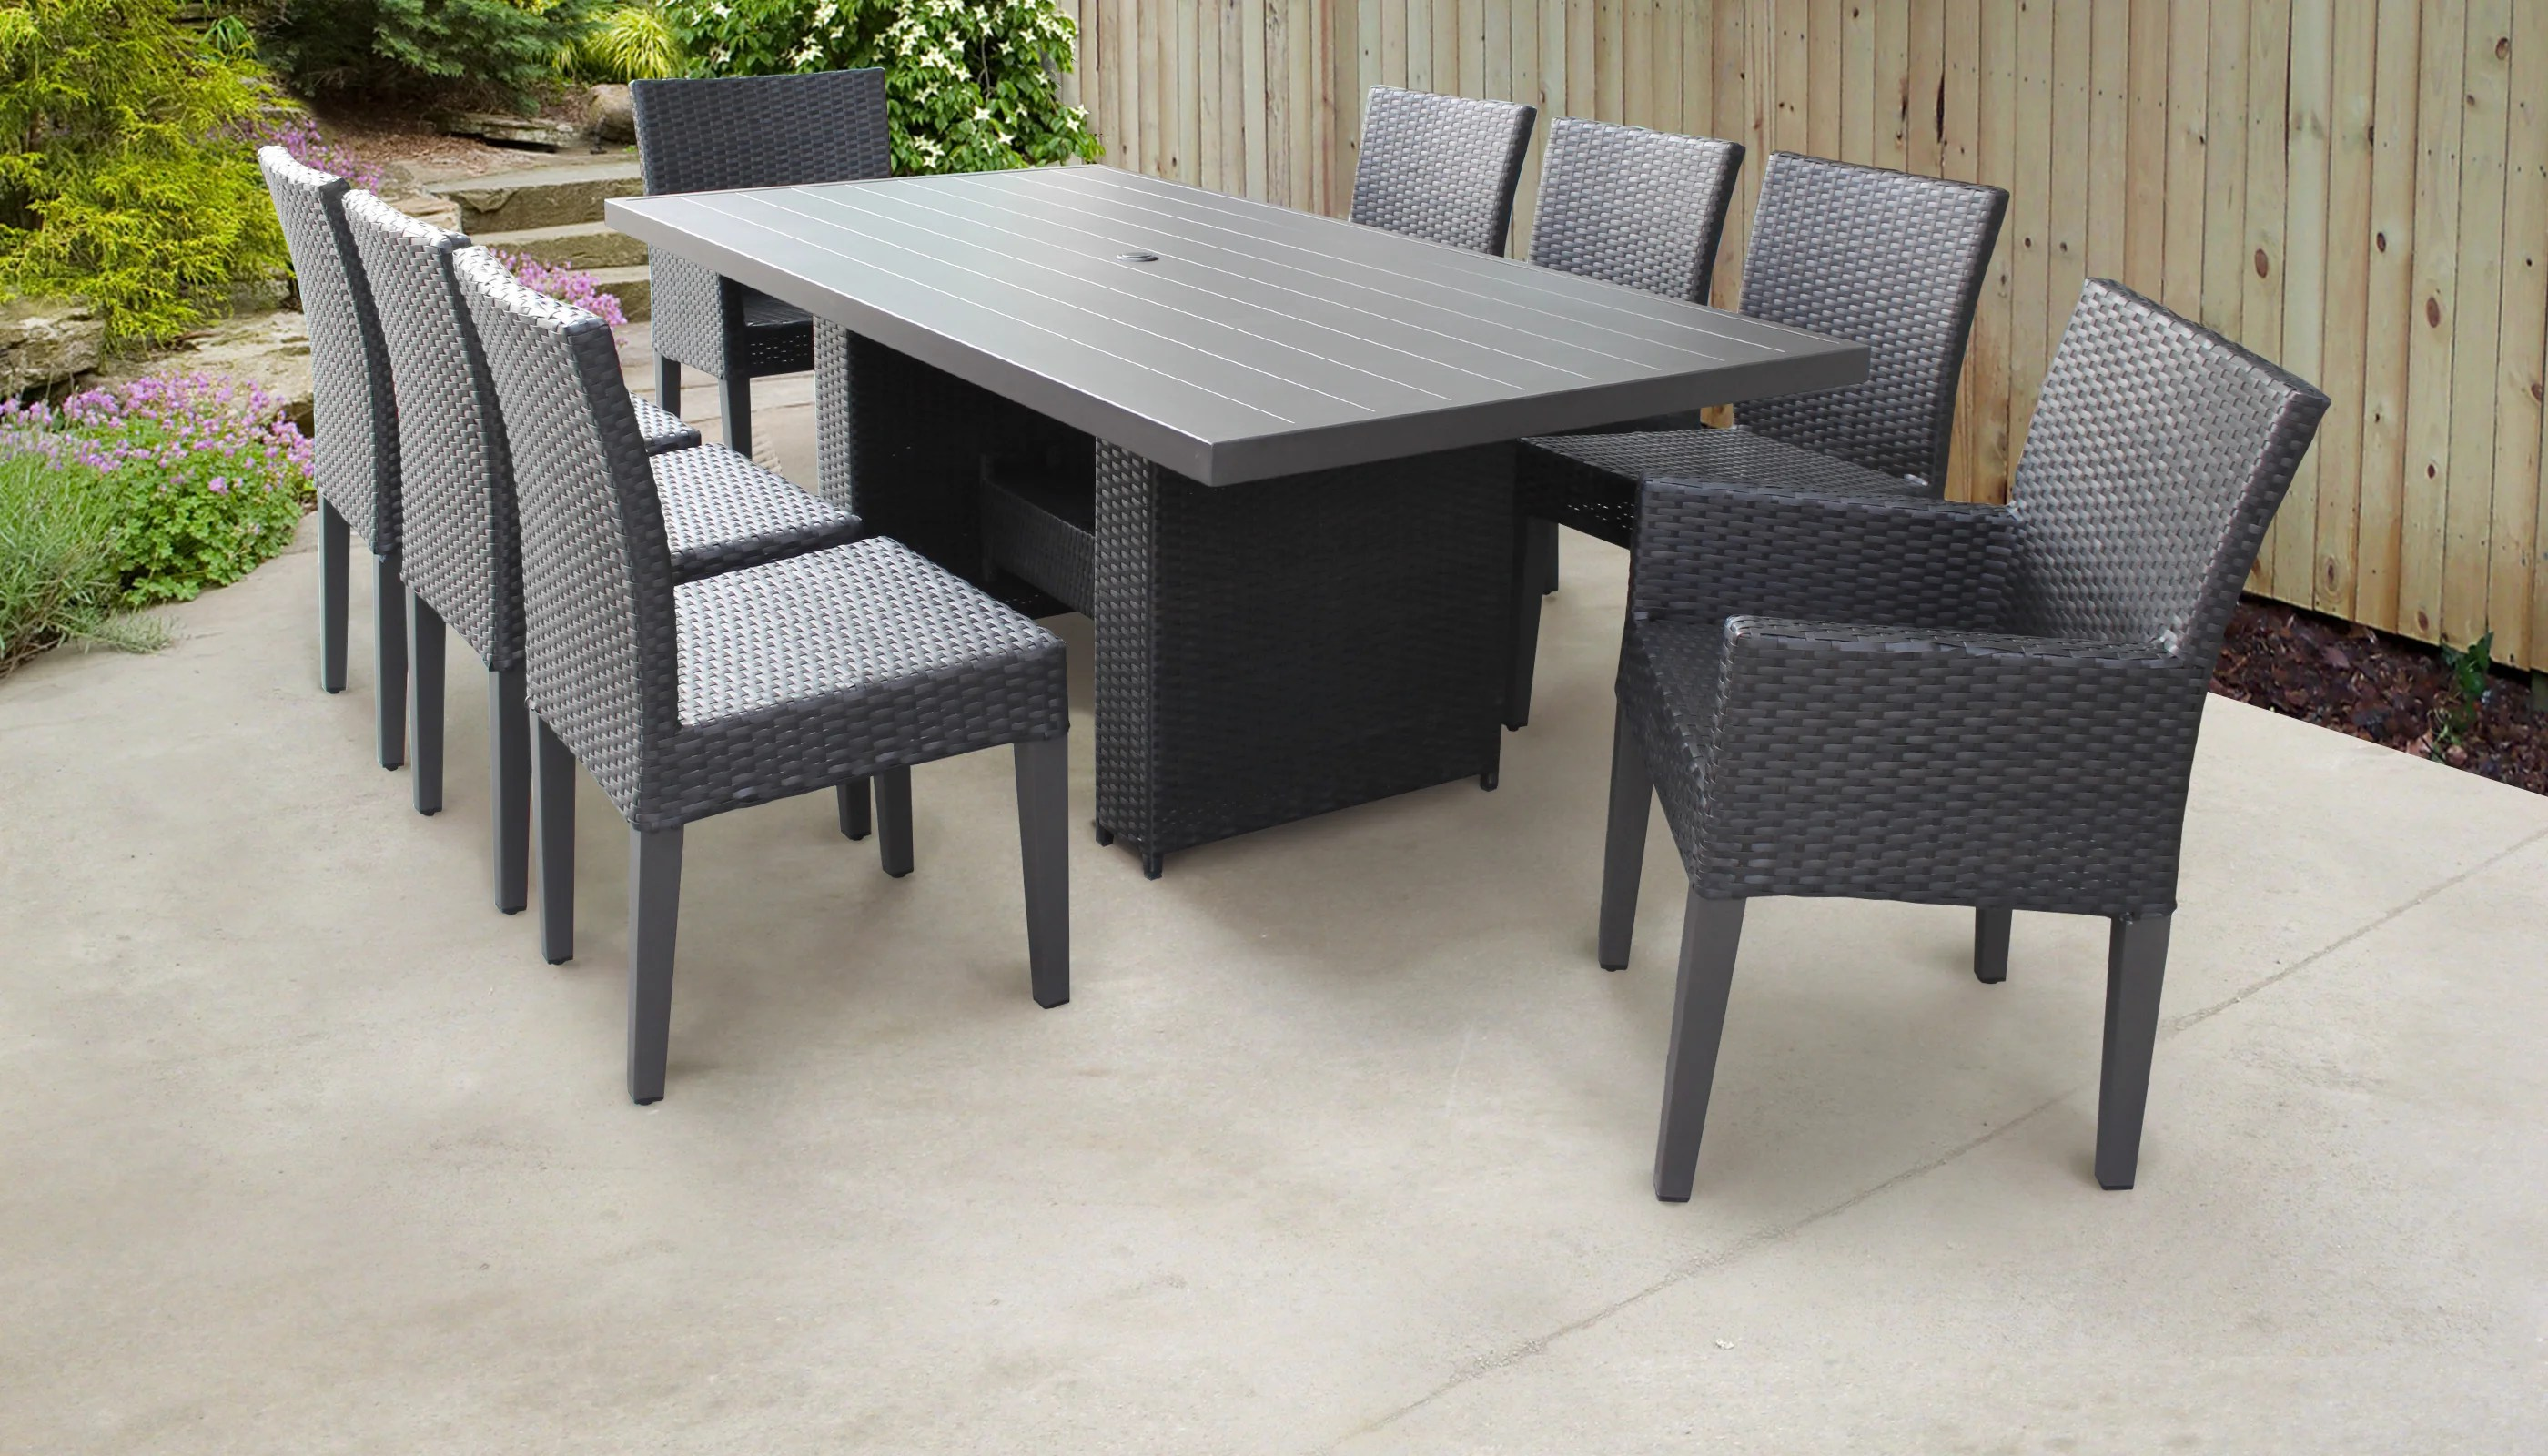 9 Piece Outdoor Dining Set Belle 9 Piece Outdoor Patio Dining Set